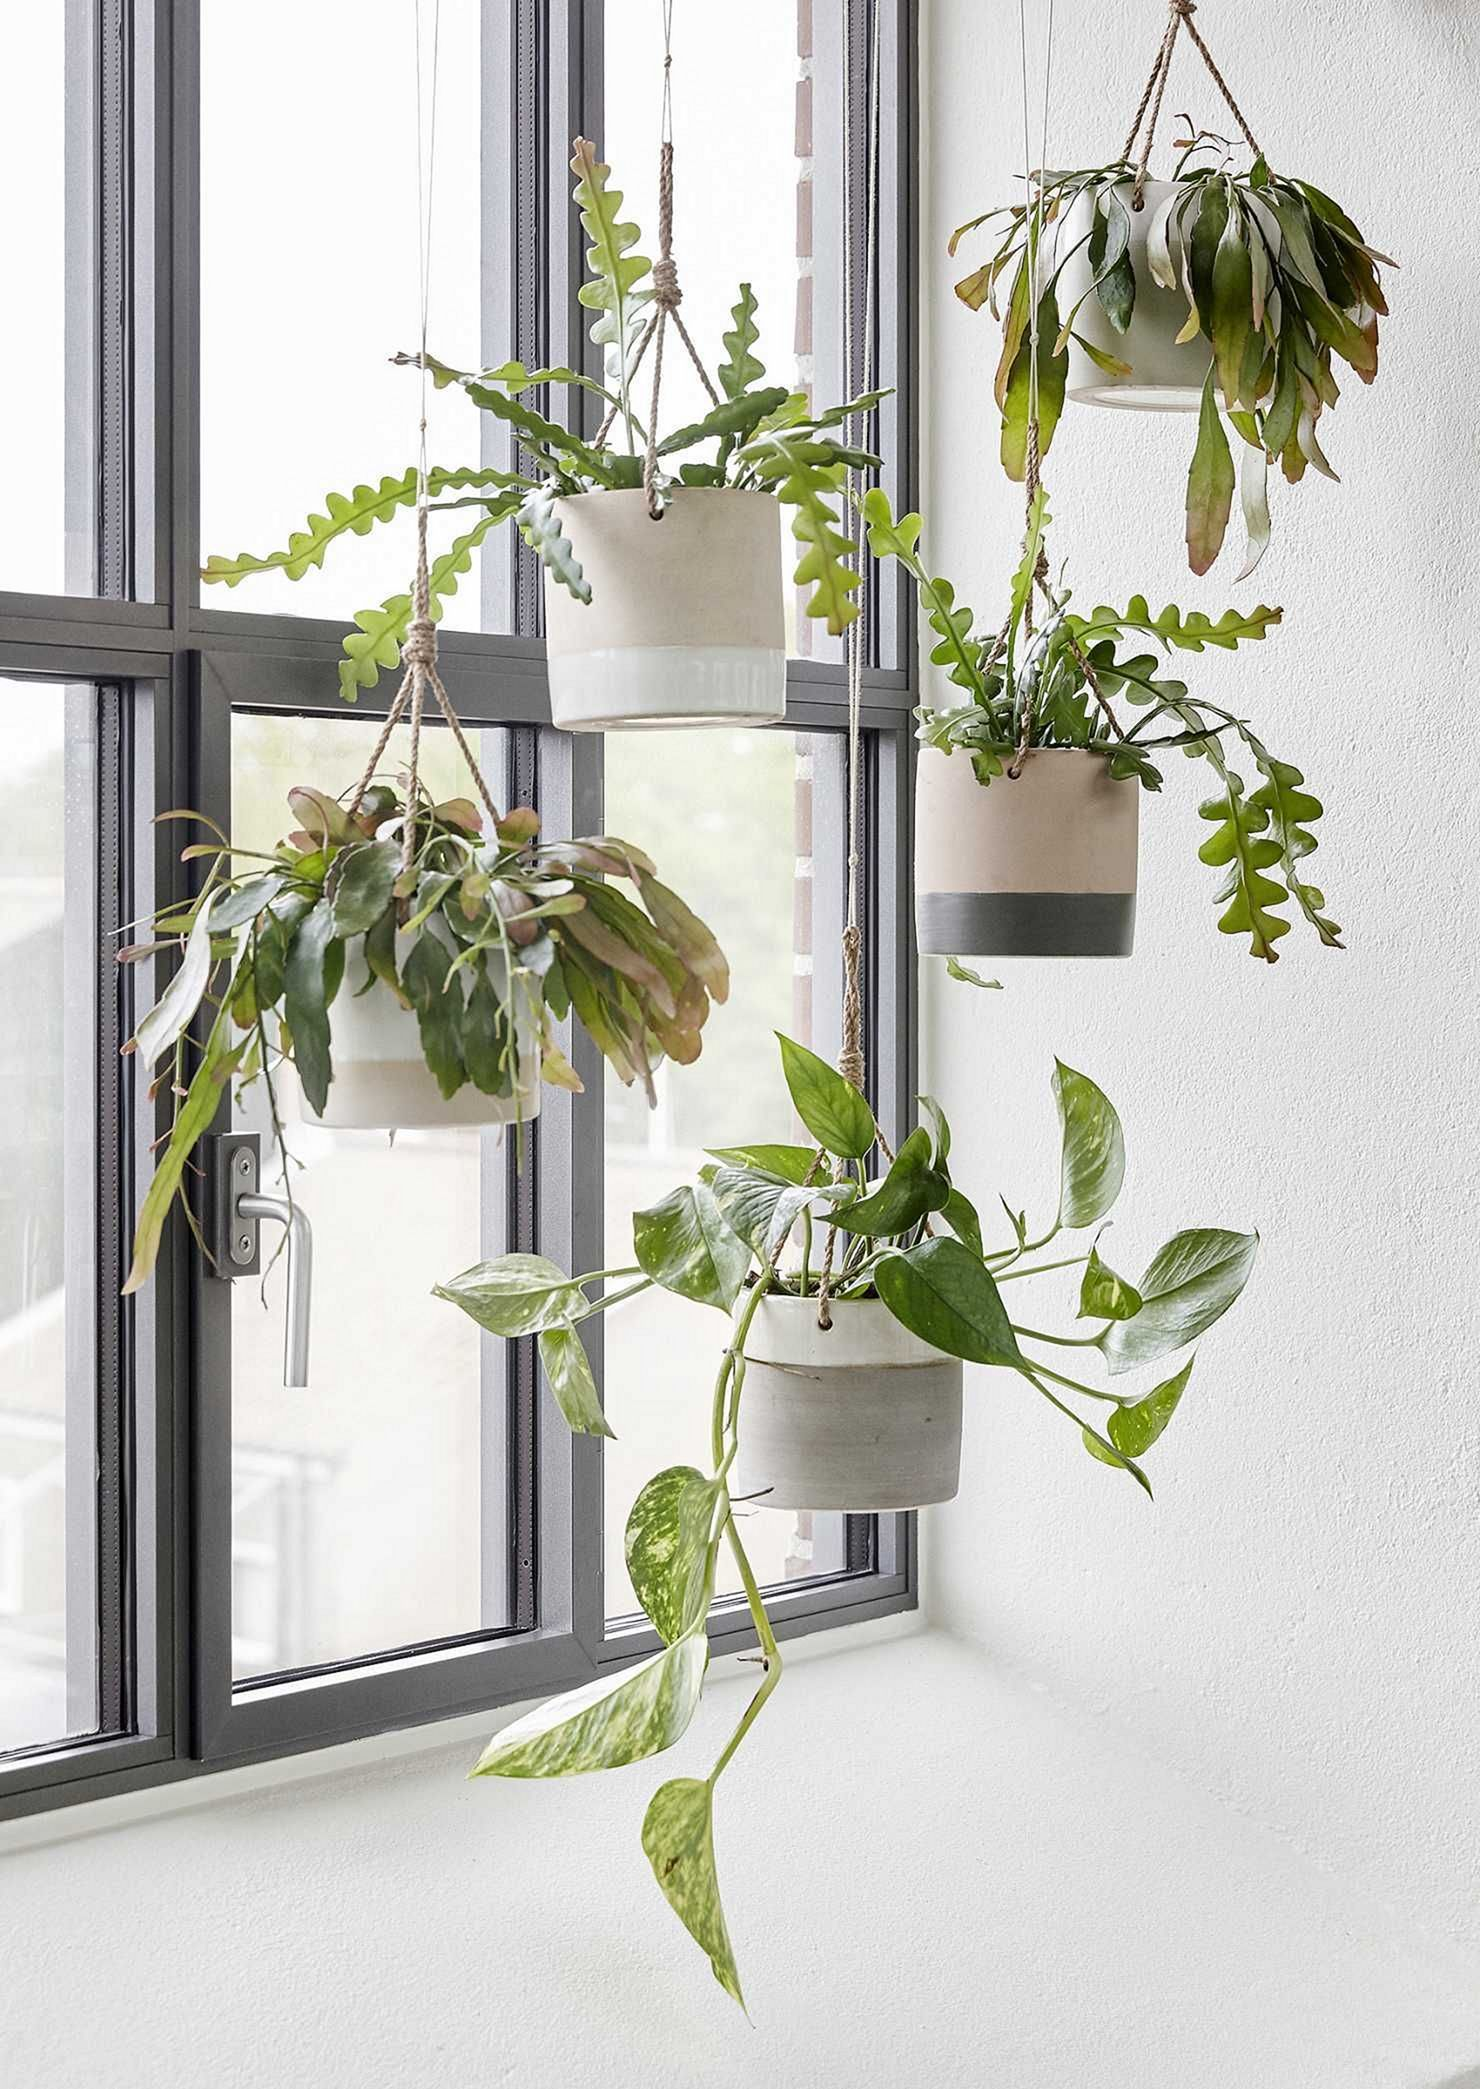 14 Diy Hanging Indoor Plants Design Ideas In 2020 Hanging Plants Indoor Hanging Plants Diy Hanging Planter